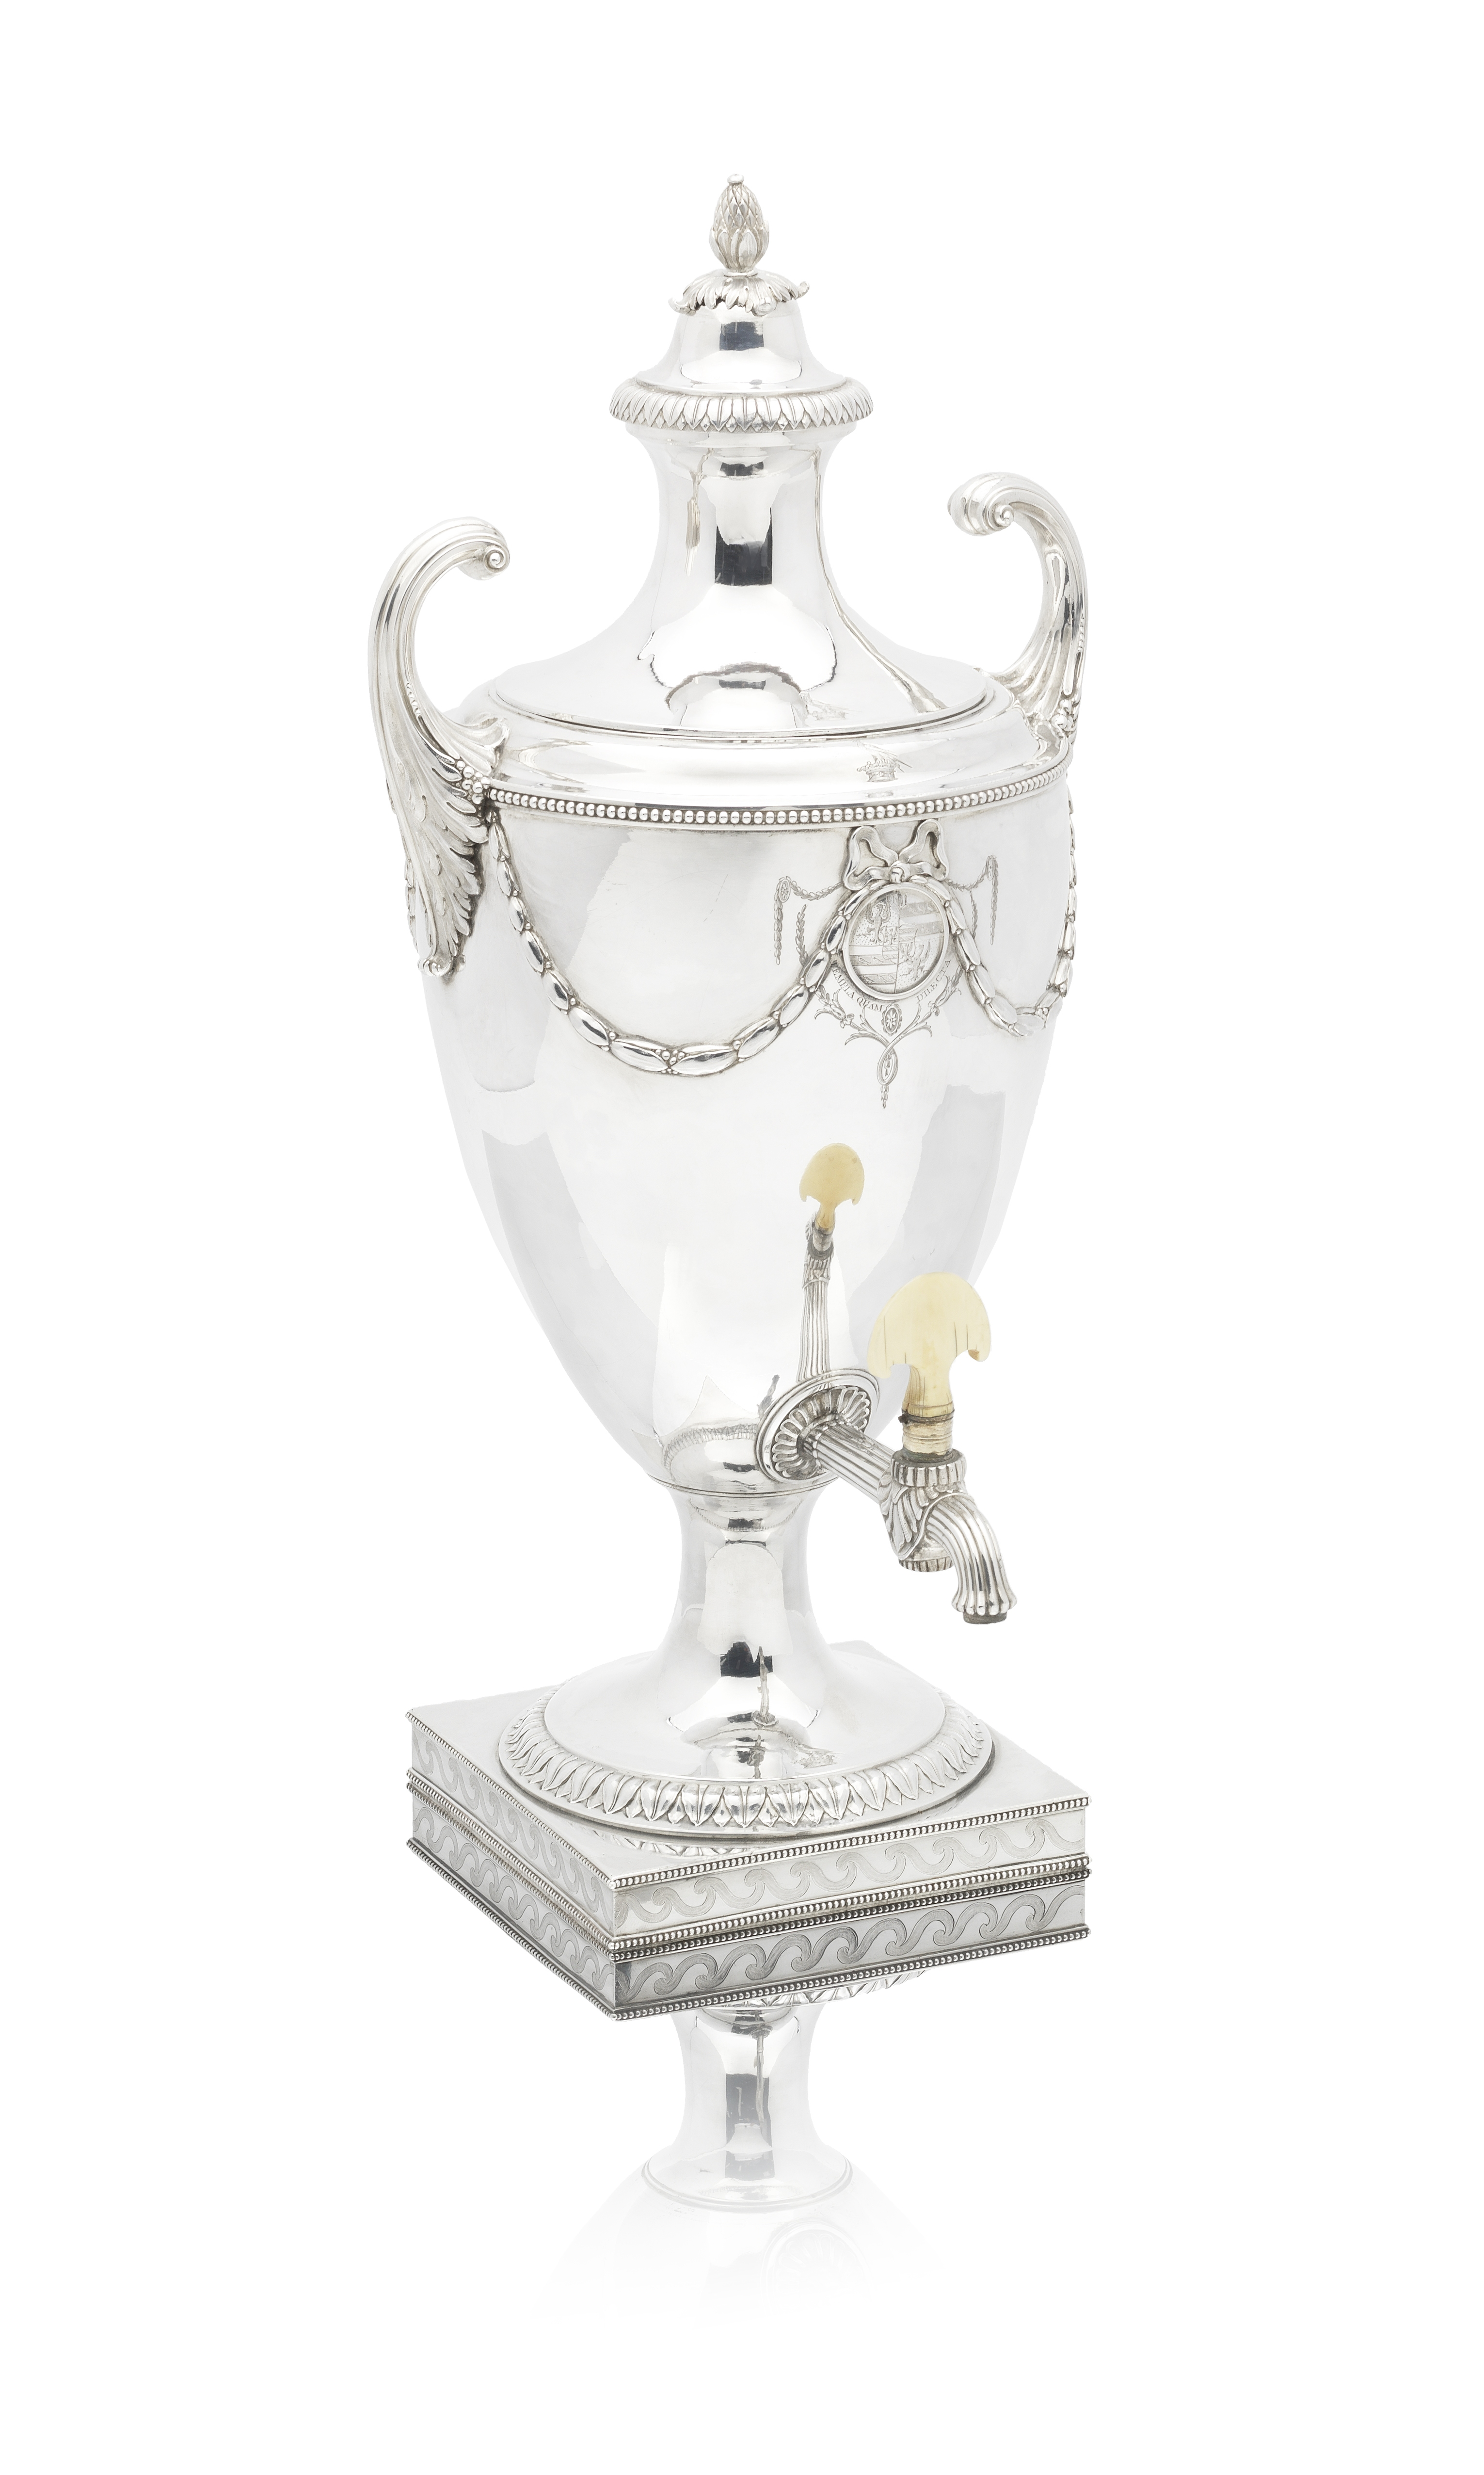 Lot 54 - A George III silver tea urn in mahogany travelling case John Wakelin and William Taylor, London 1778